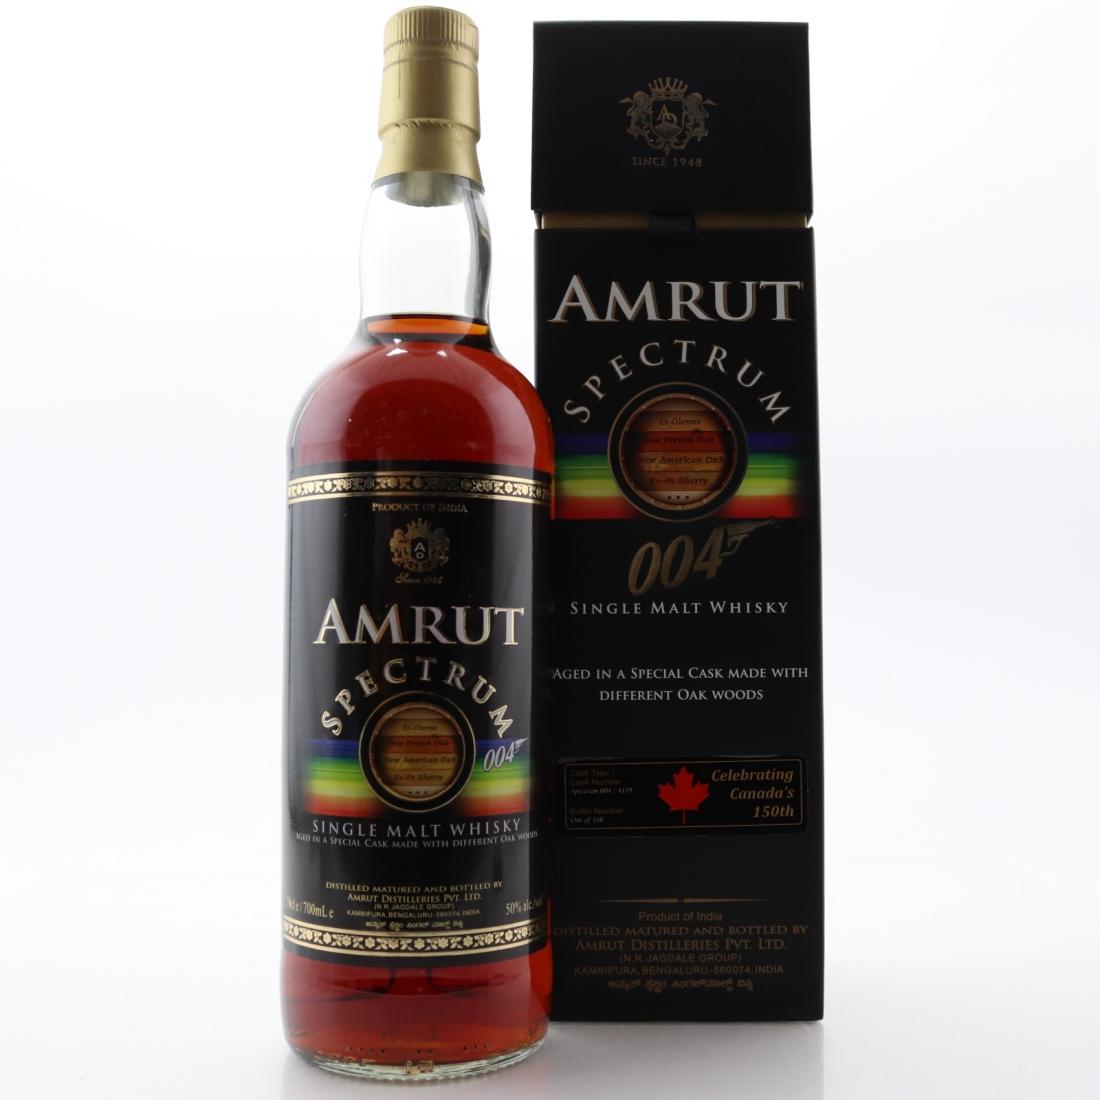 Amrut Spectrum 004 Single Cask / Canadian 150th Anniversary